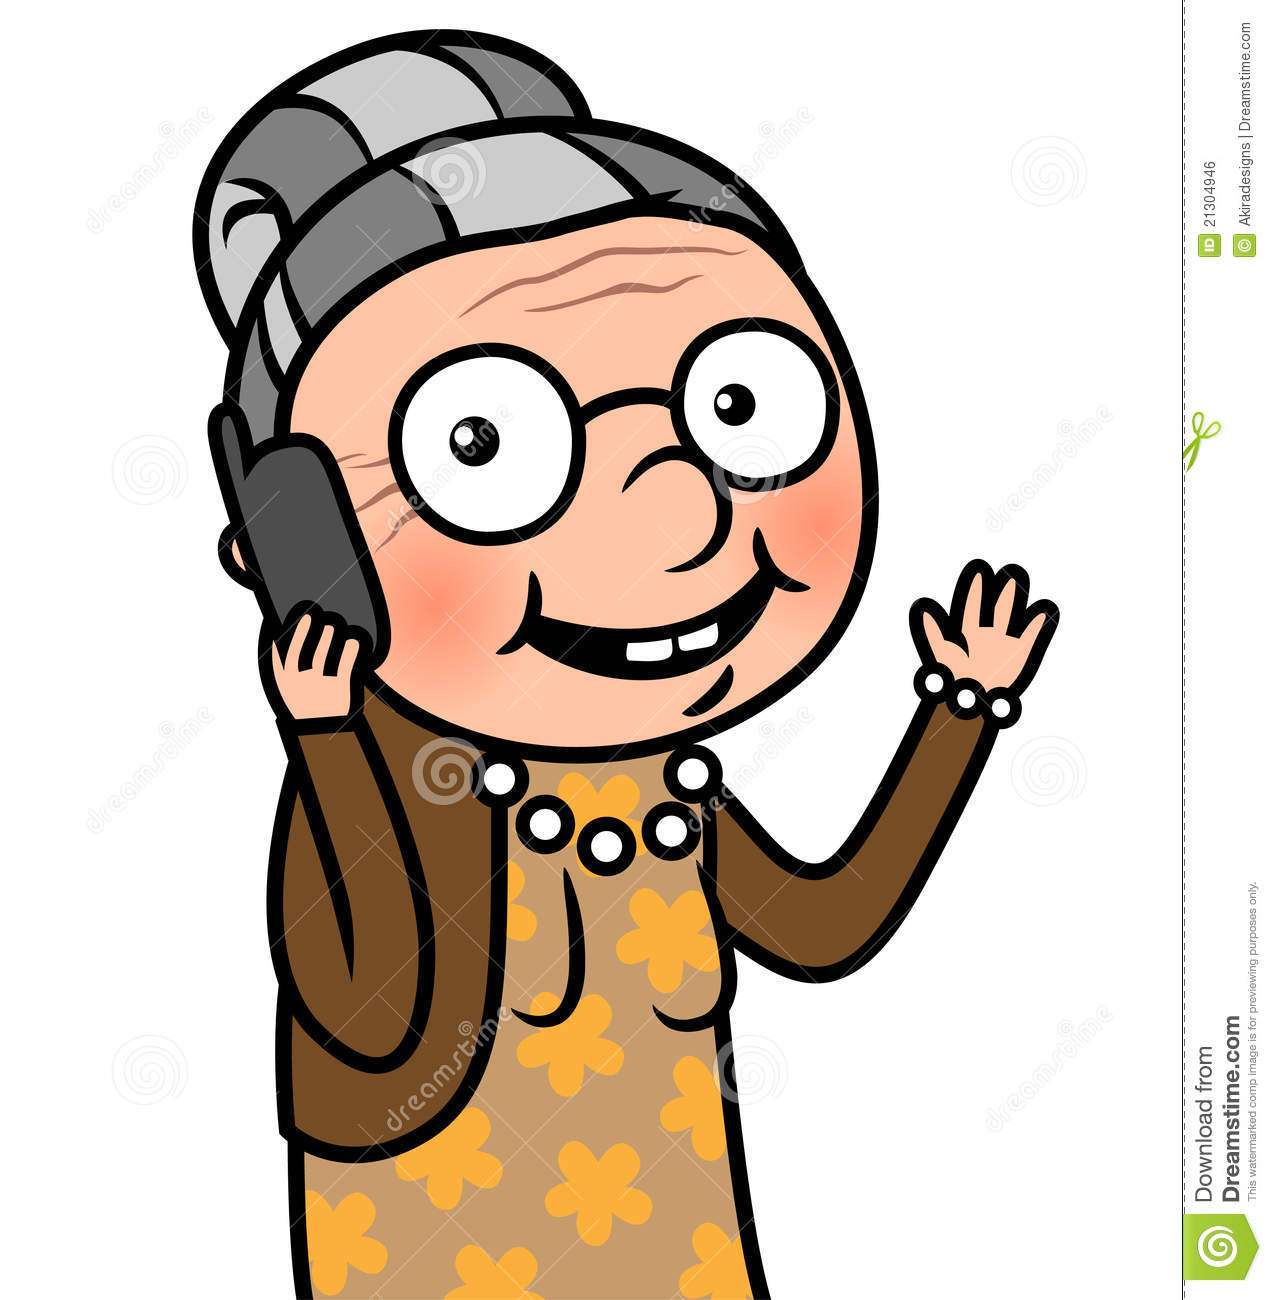 old woman talking on a cell phone stock vector illustration of rh dreamstime com Cell Phone Border Clip Art Cell Phone Border Clip Art